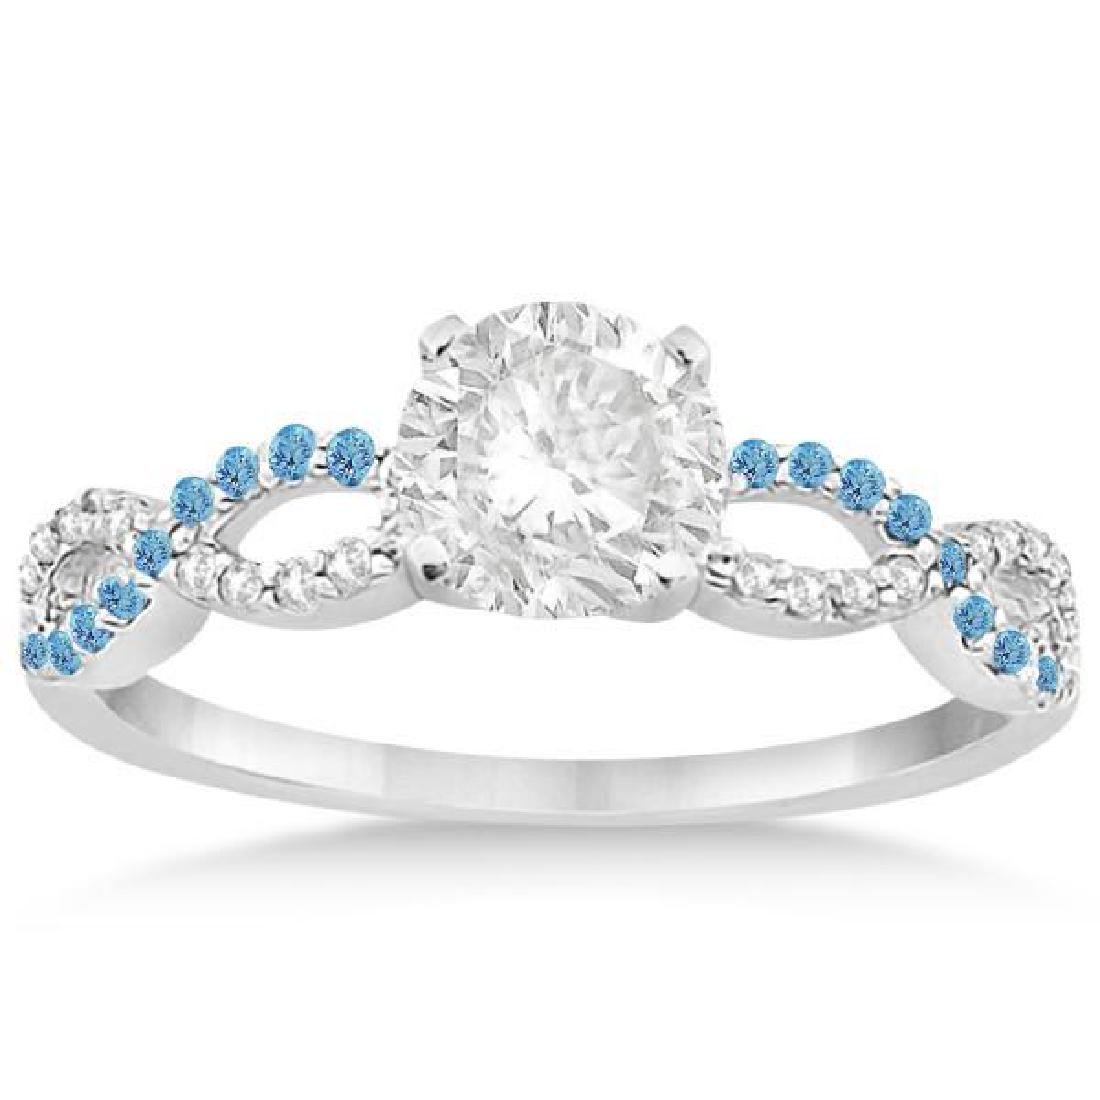 Infinity Diamond and Blue Topaz Engagement Ring in 14k